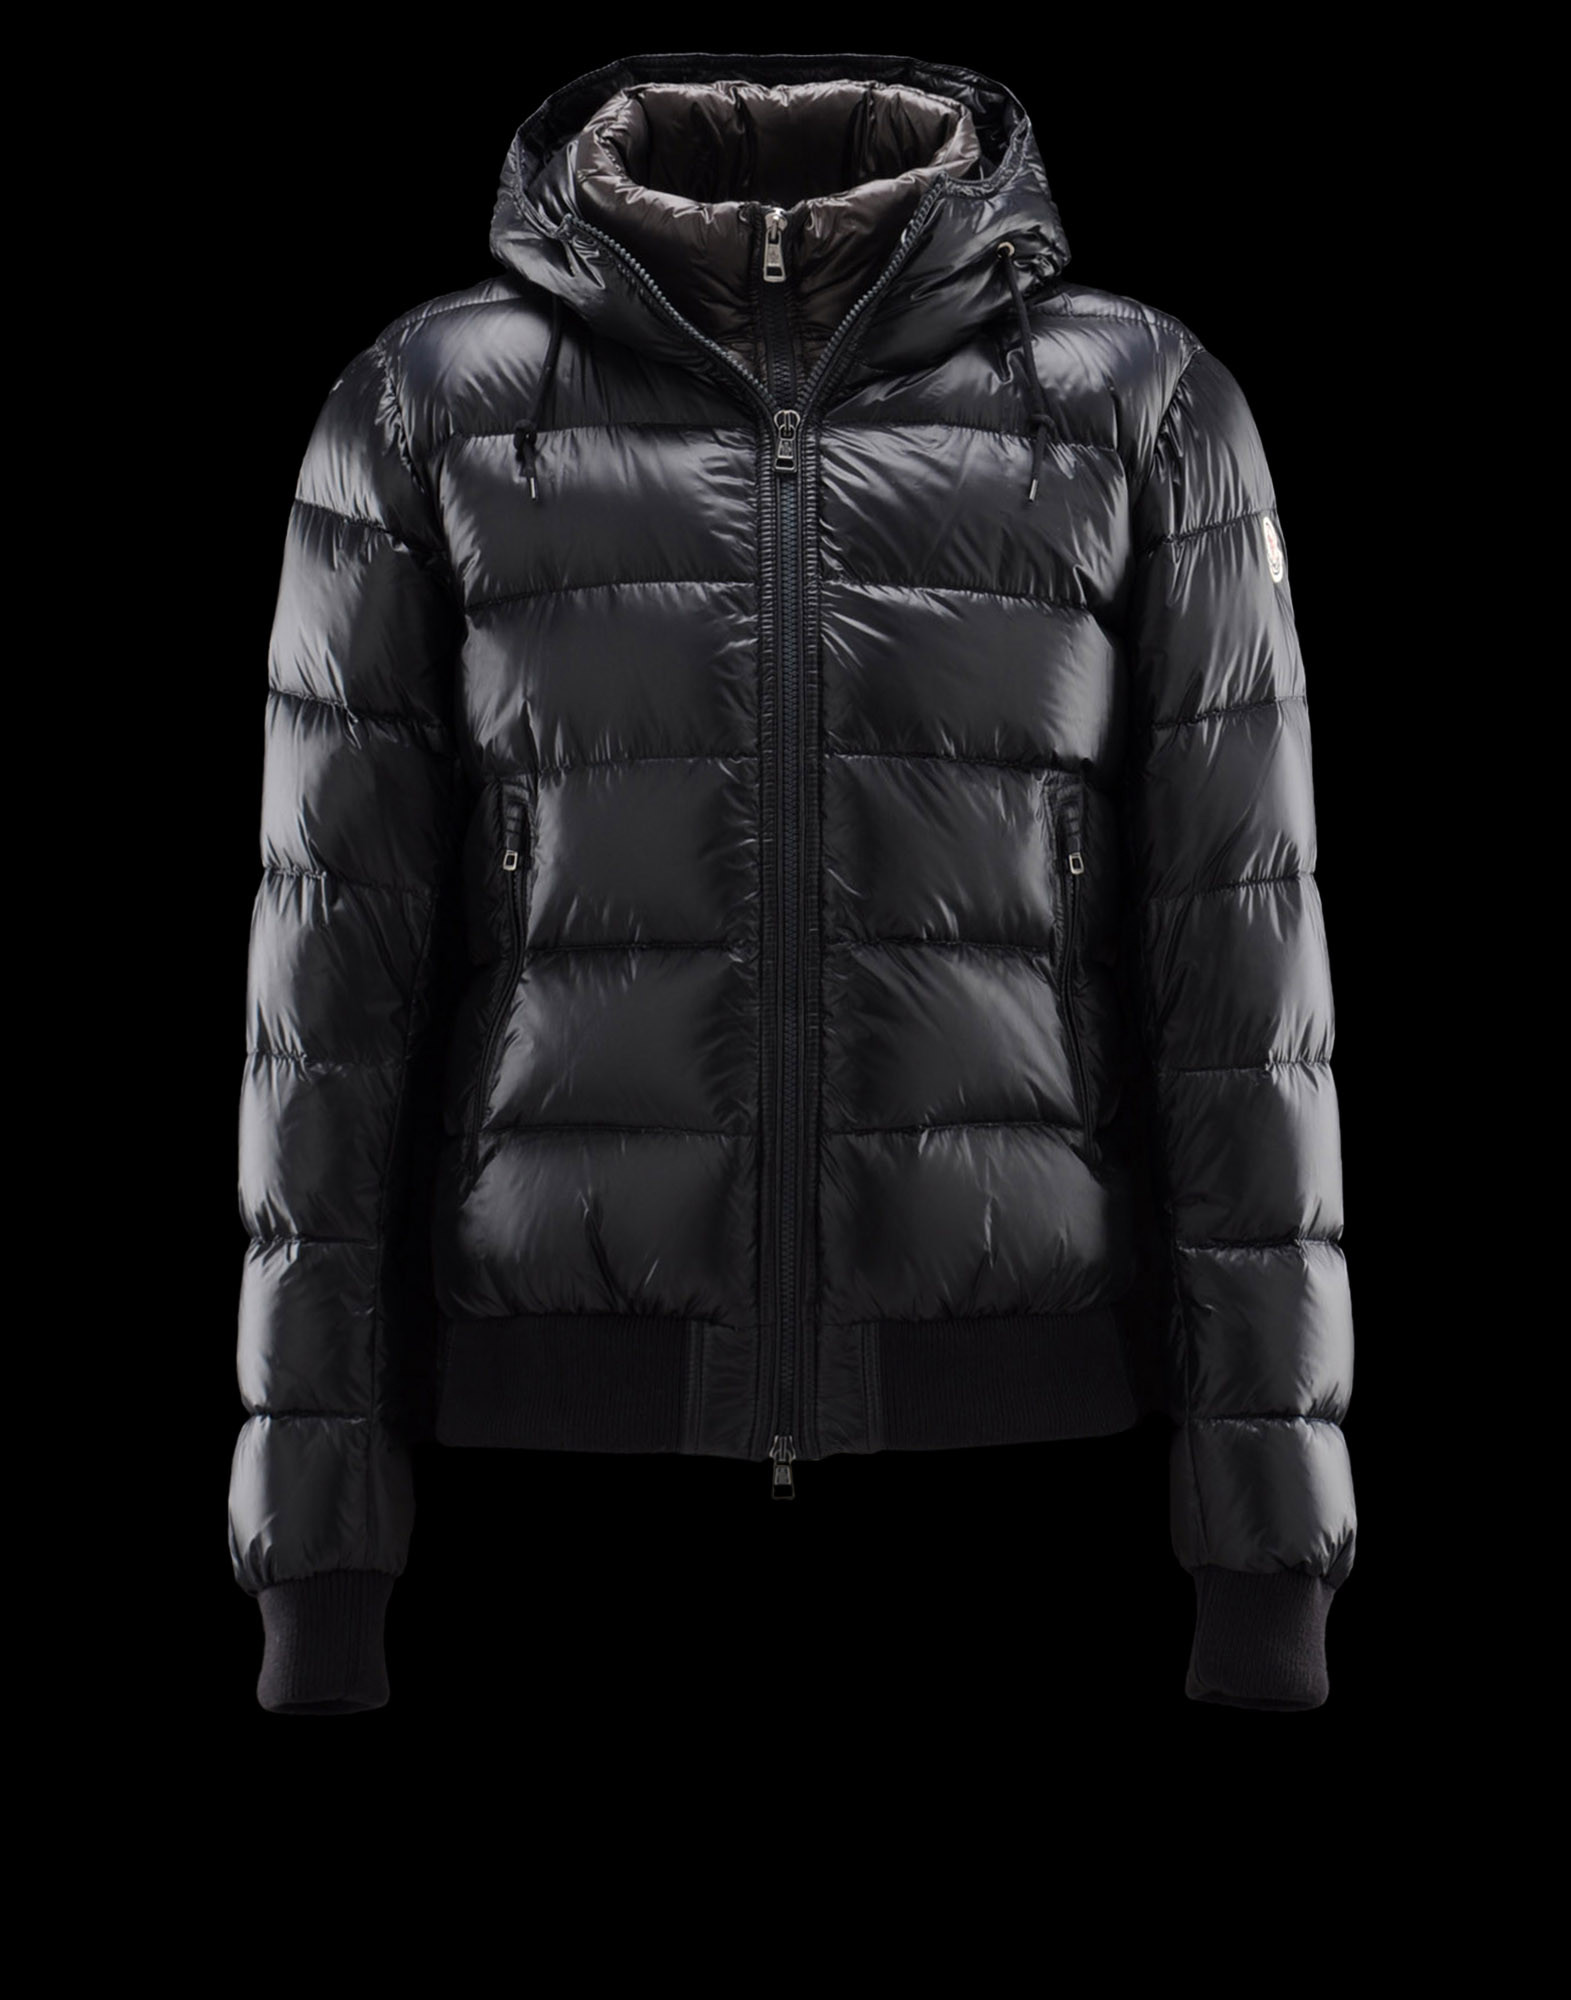 825362 Moncler Outlet Orlando Moncler Store Moncler Jacket For Women  - Discount